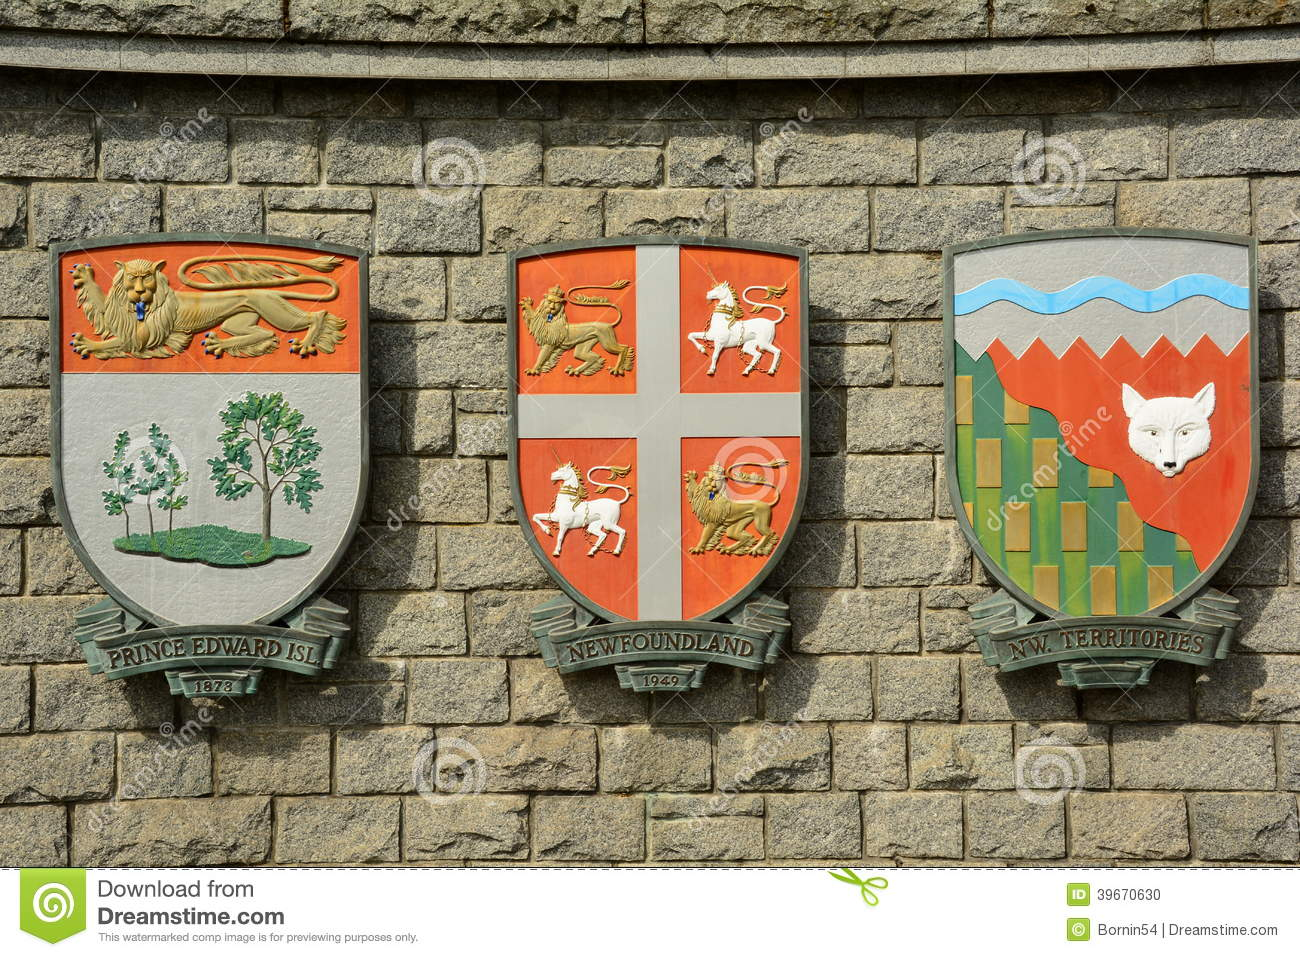 The coat of arms for the provinces of prince edward island royalty free stock photo biocorpaavc Choice Image